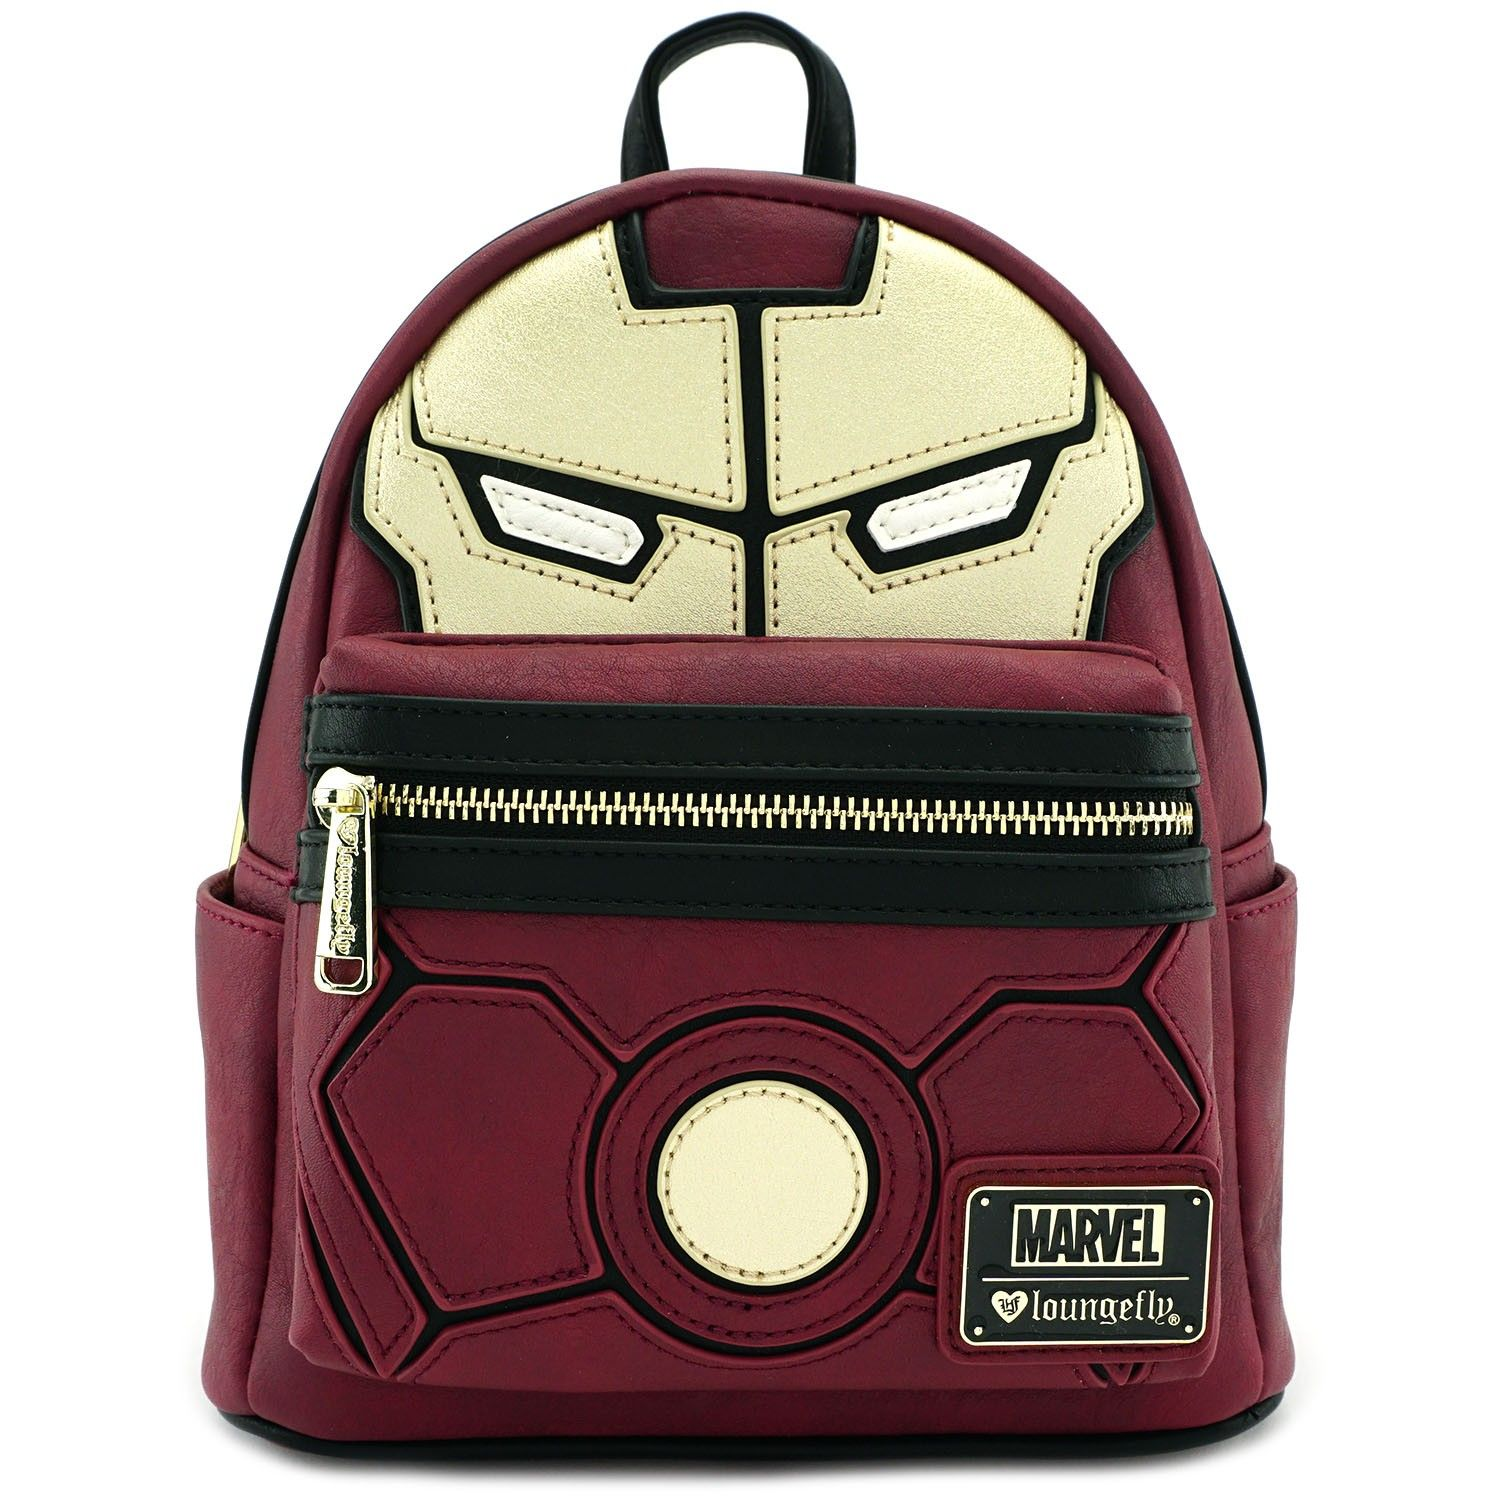 Loungefly x Marvel Iron Man Cosplay Faux Leather Mini Backpack - Marvel -  Brands b017598e5ed95